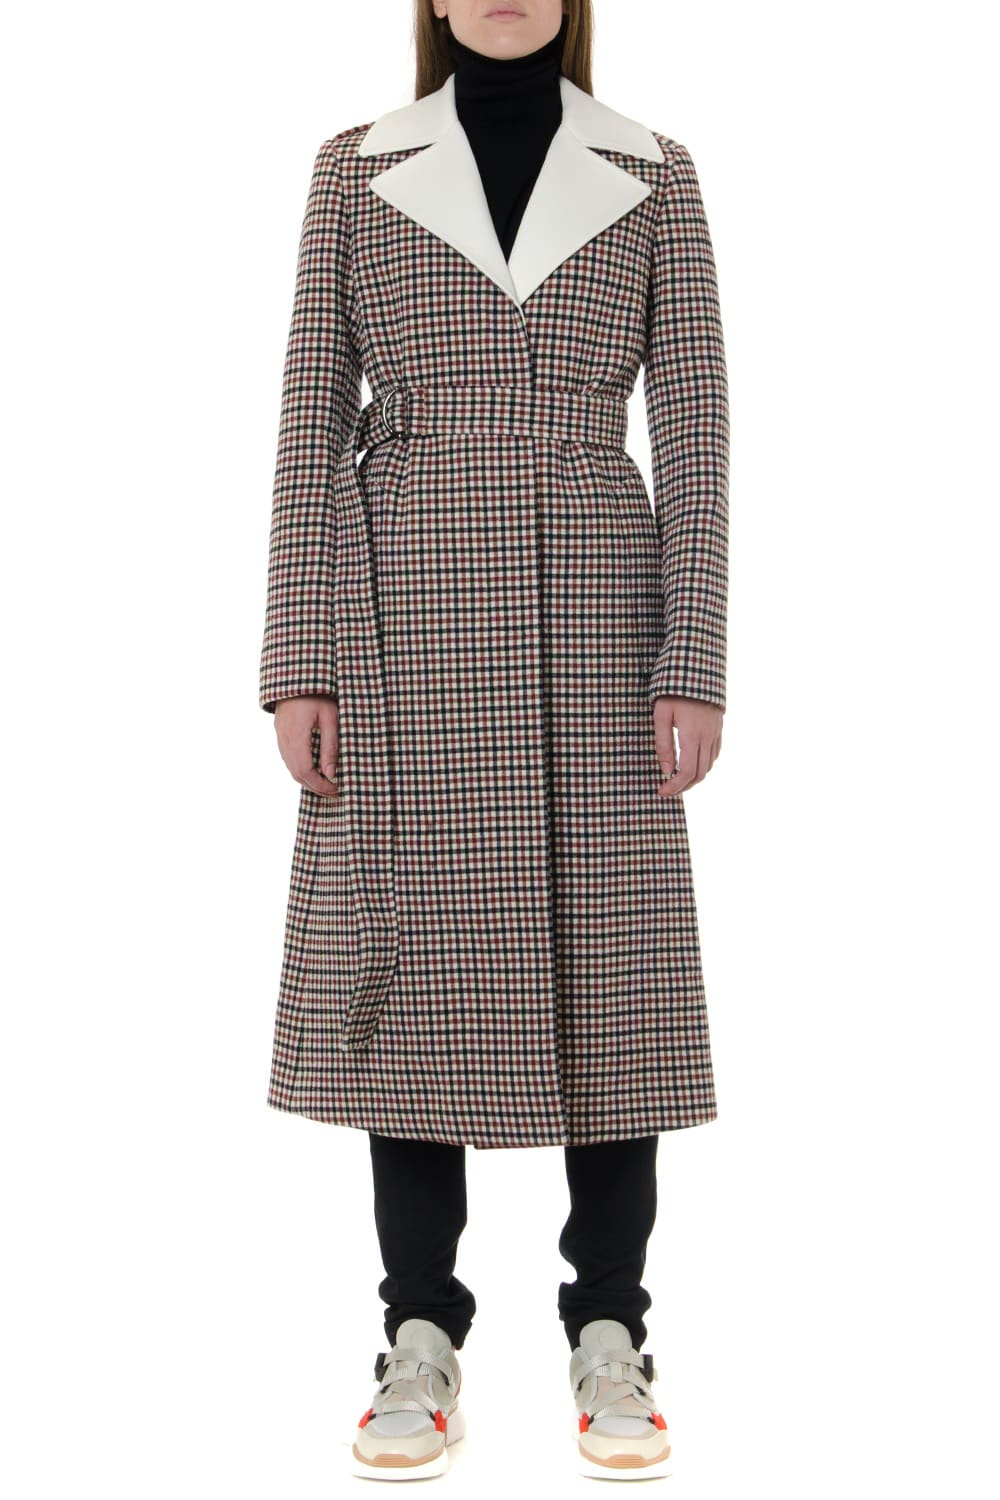 Chloé White & Red Virgin Wool Checked Coat